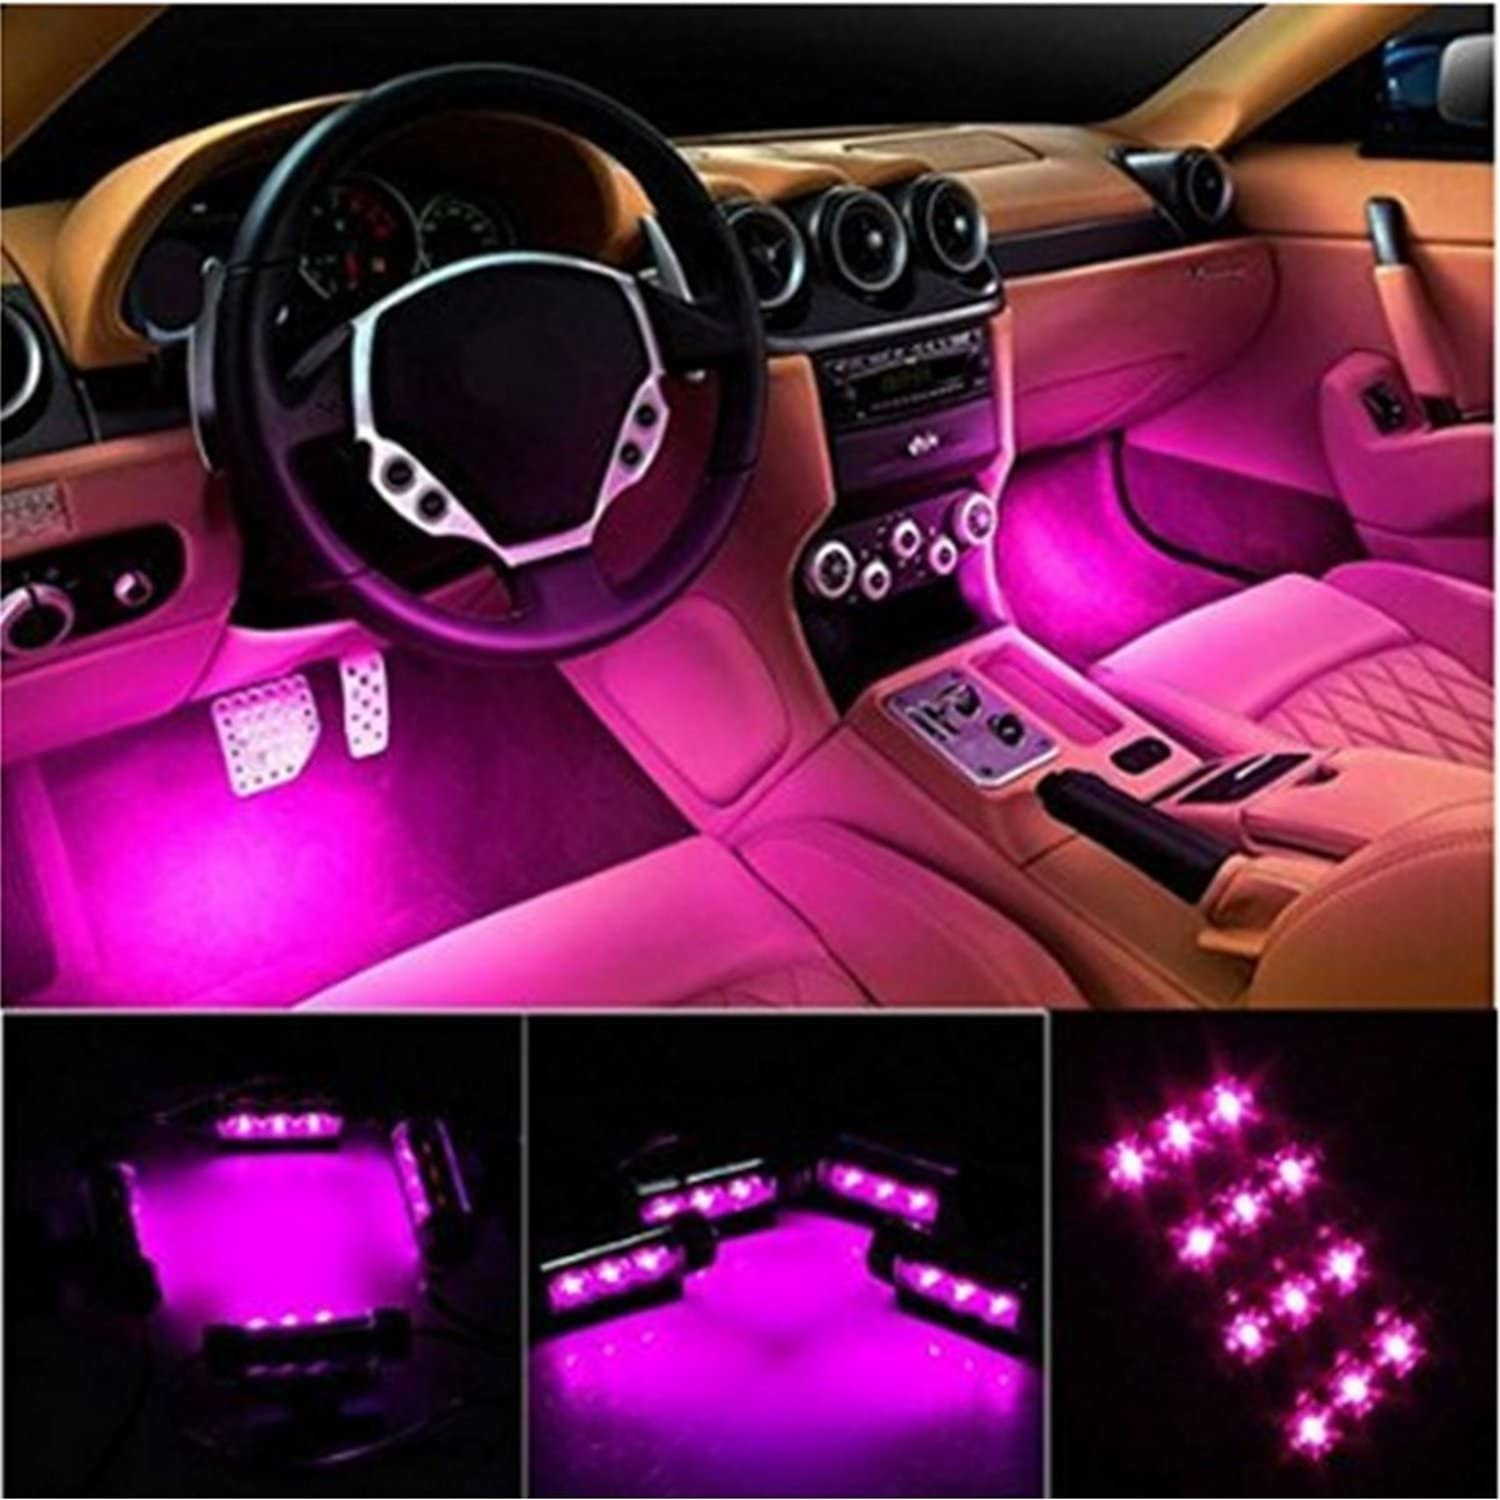 Car Ice White Dice Lights 12 Volt With Switch Light Up Dice